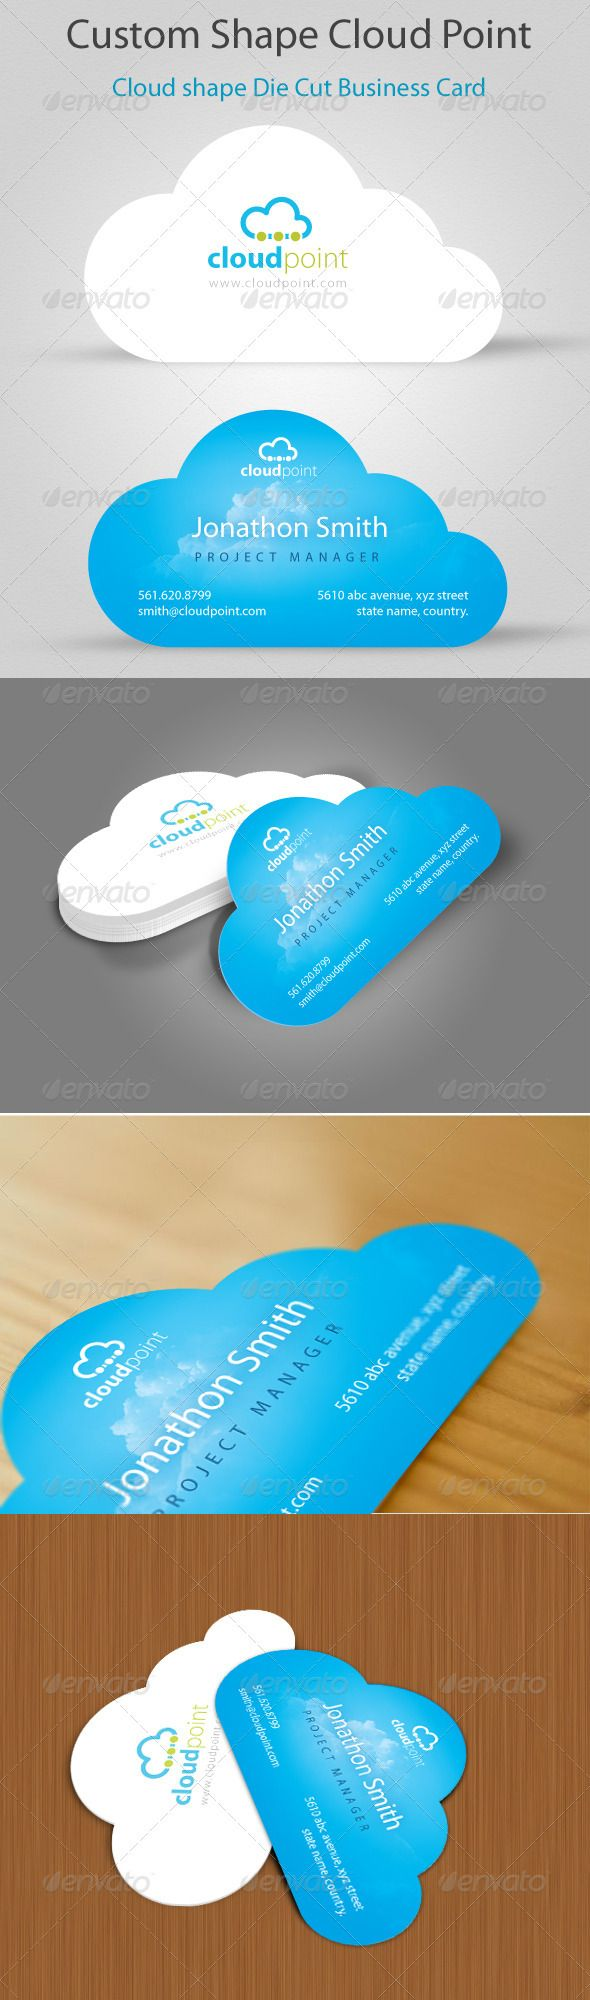 Cloud Point Custom Shape Die cut Business Card | Business cards ...